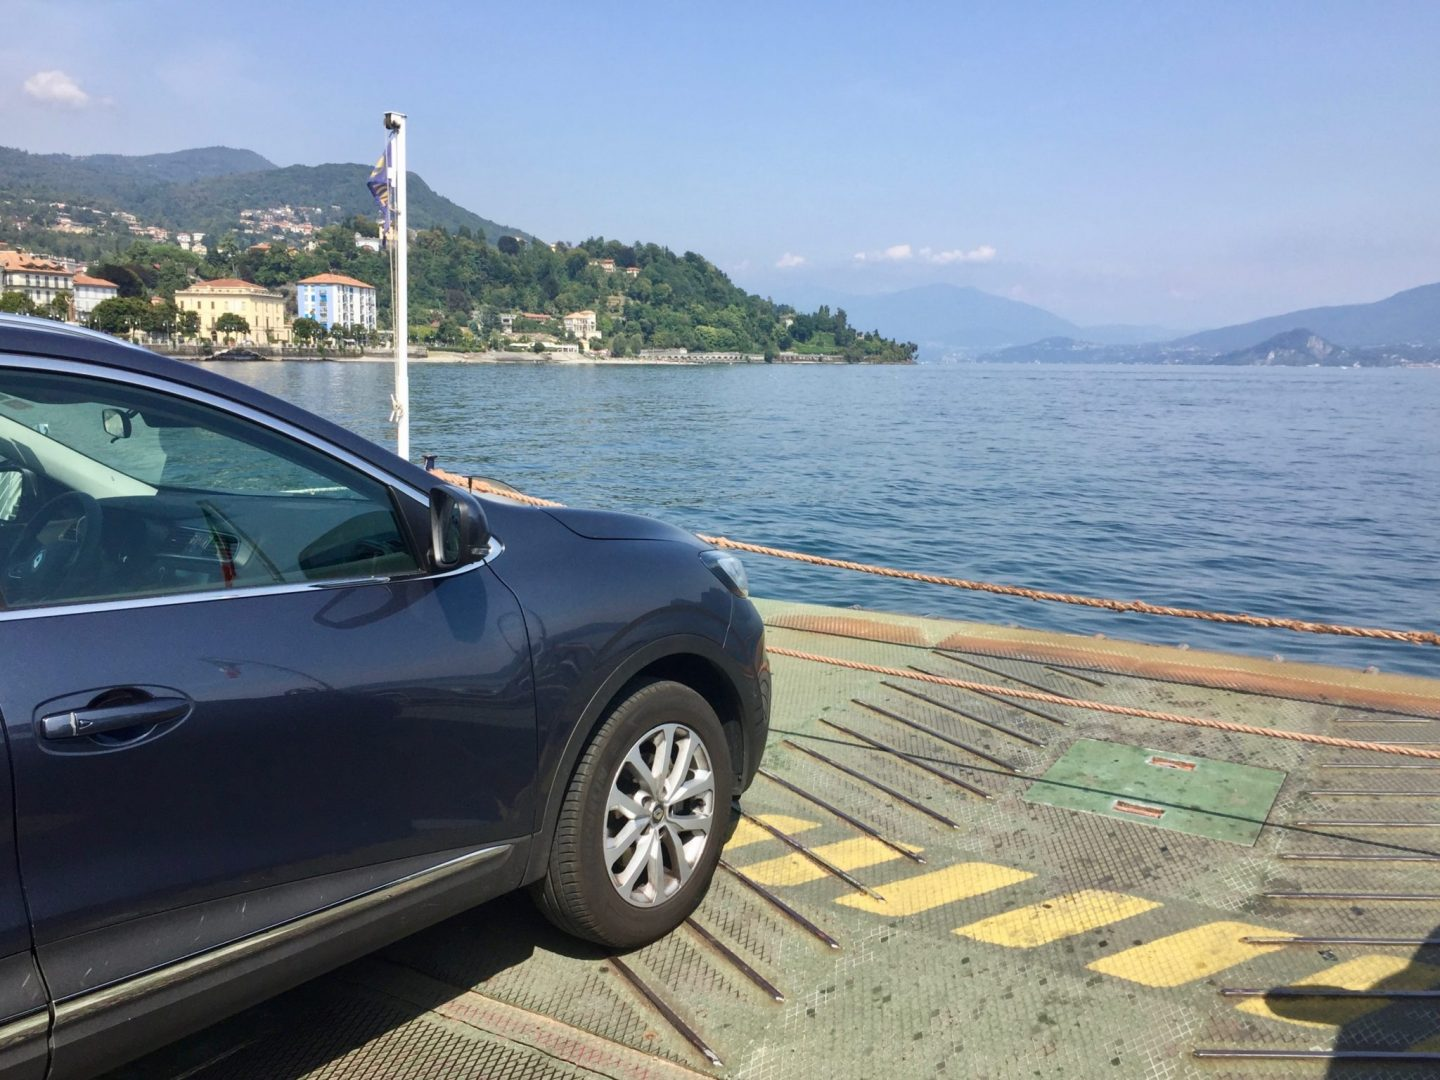 Car ferry Lake Maggiore - Luxury Italian Lakes villa